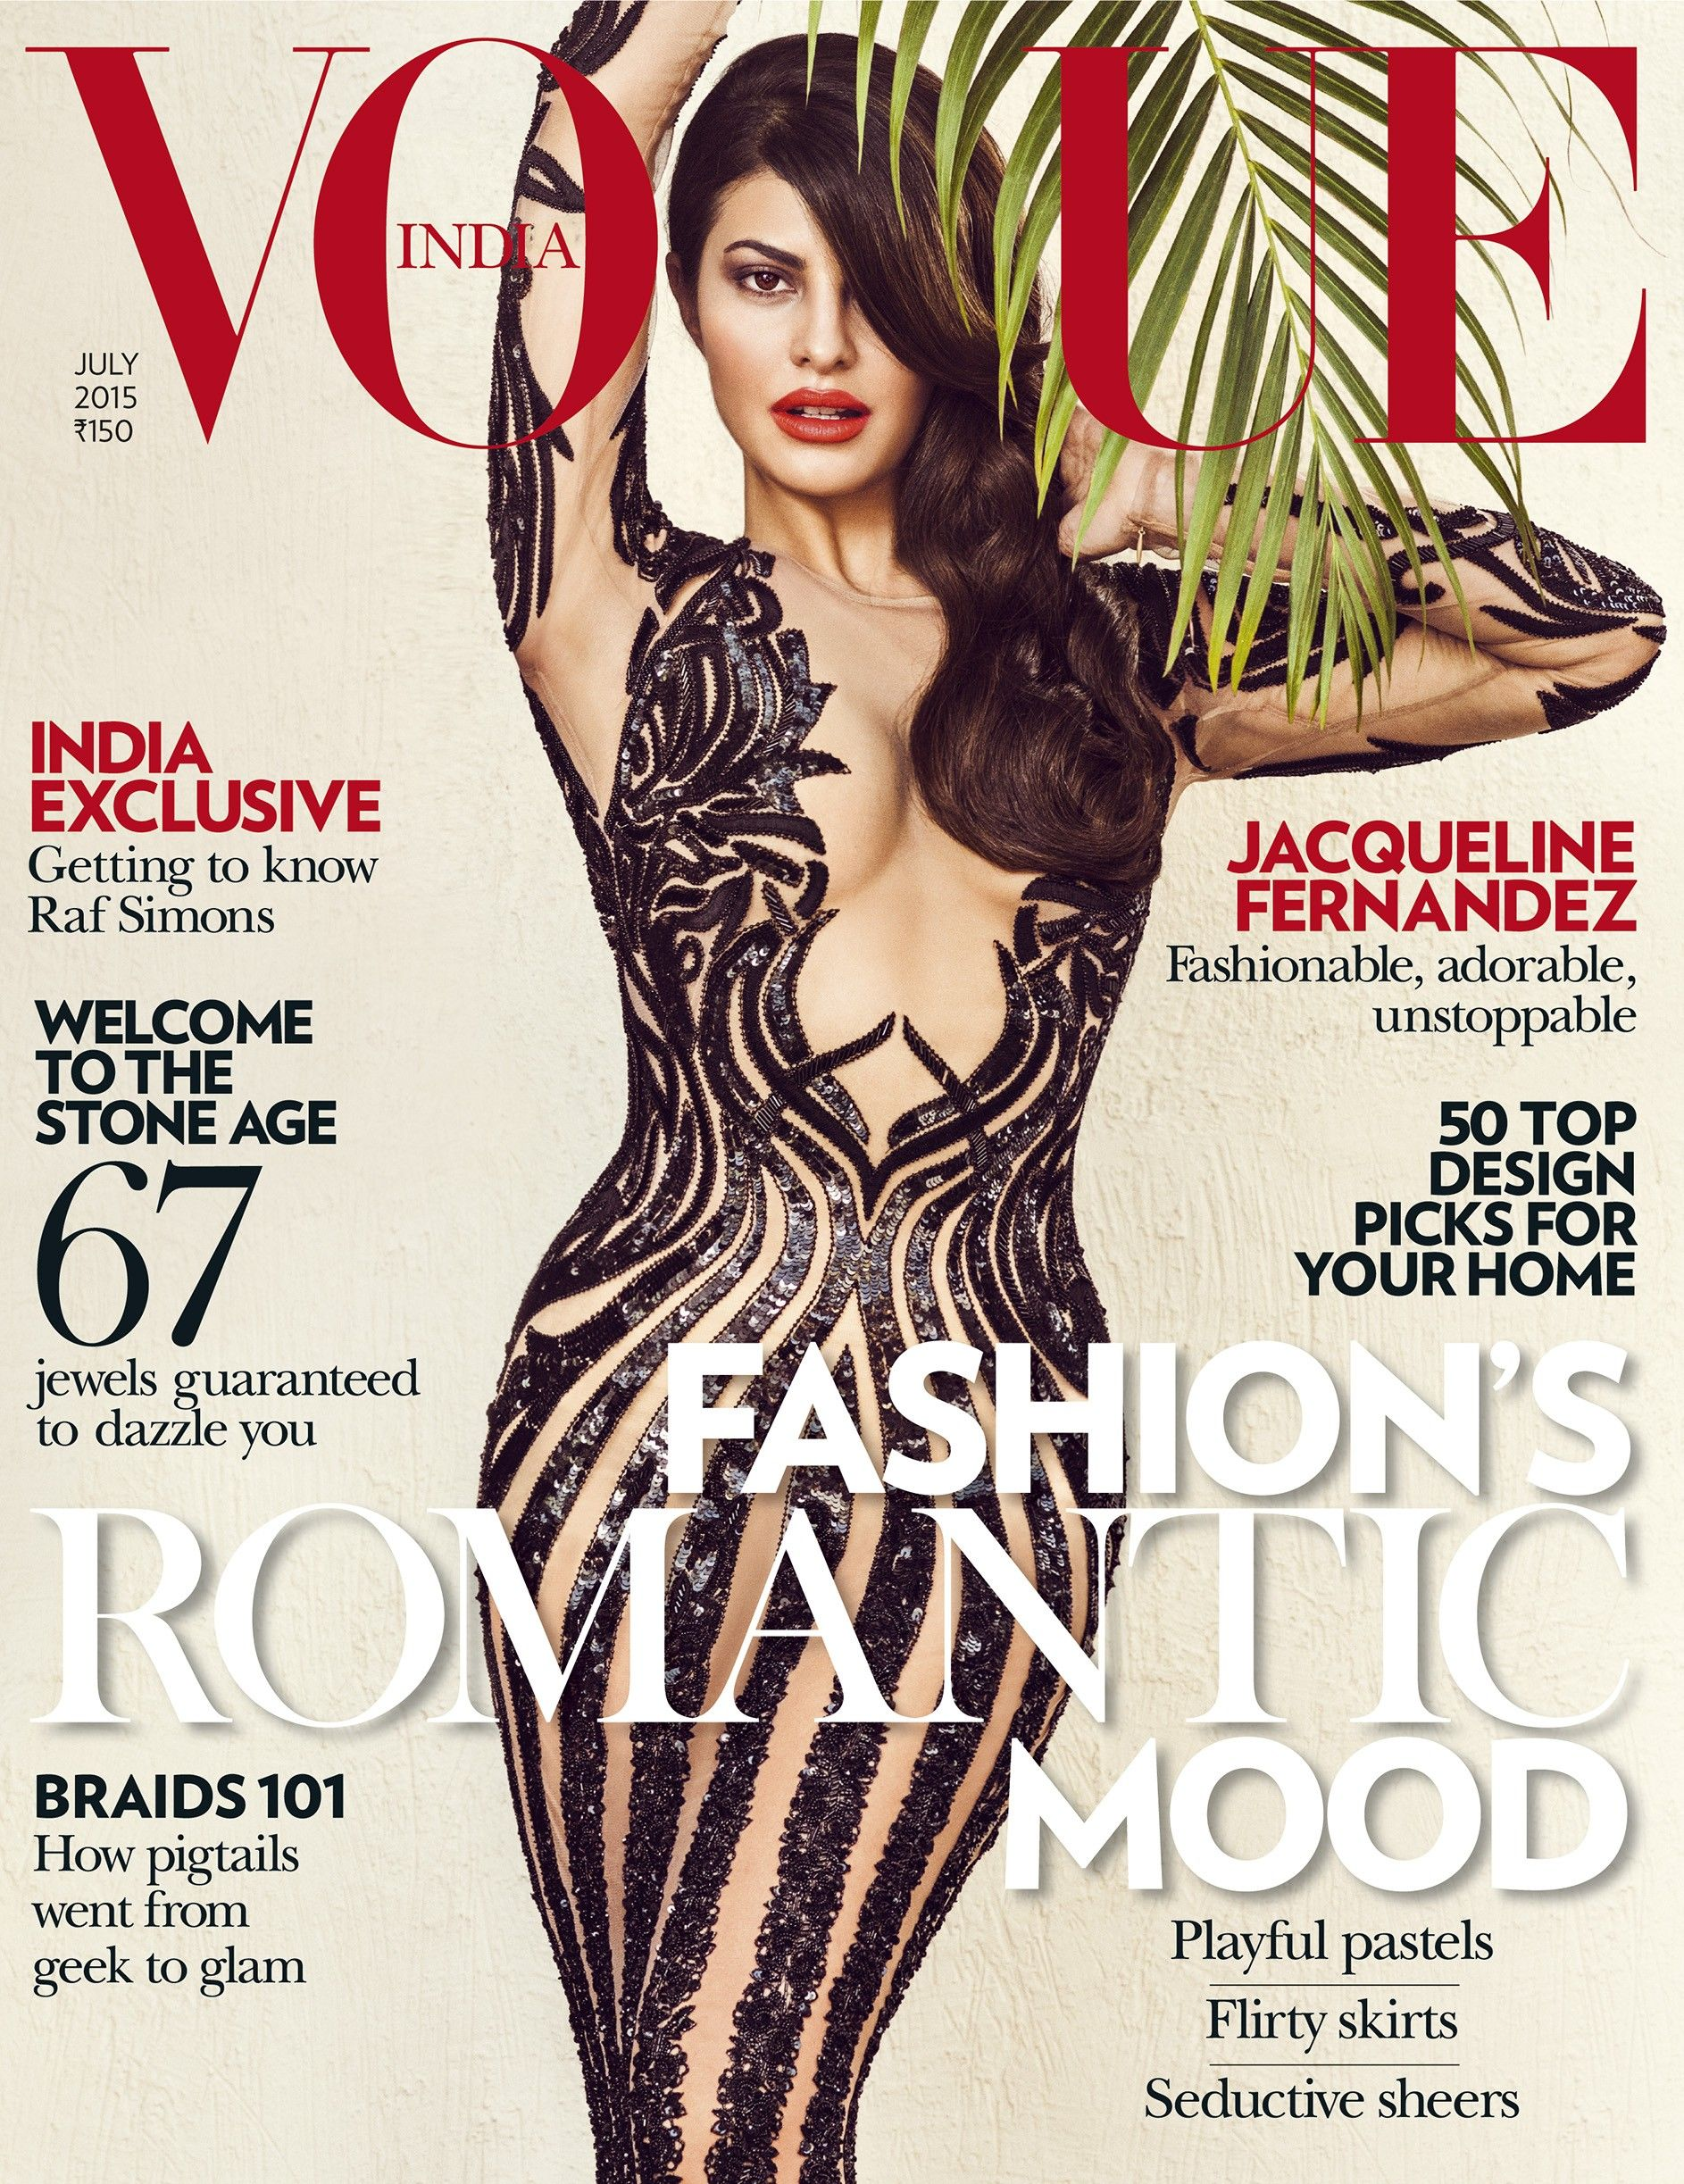 To acquire Alia newbie bhatt on vogue cover picture trends